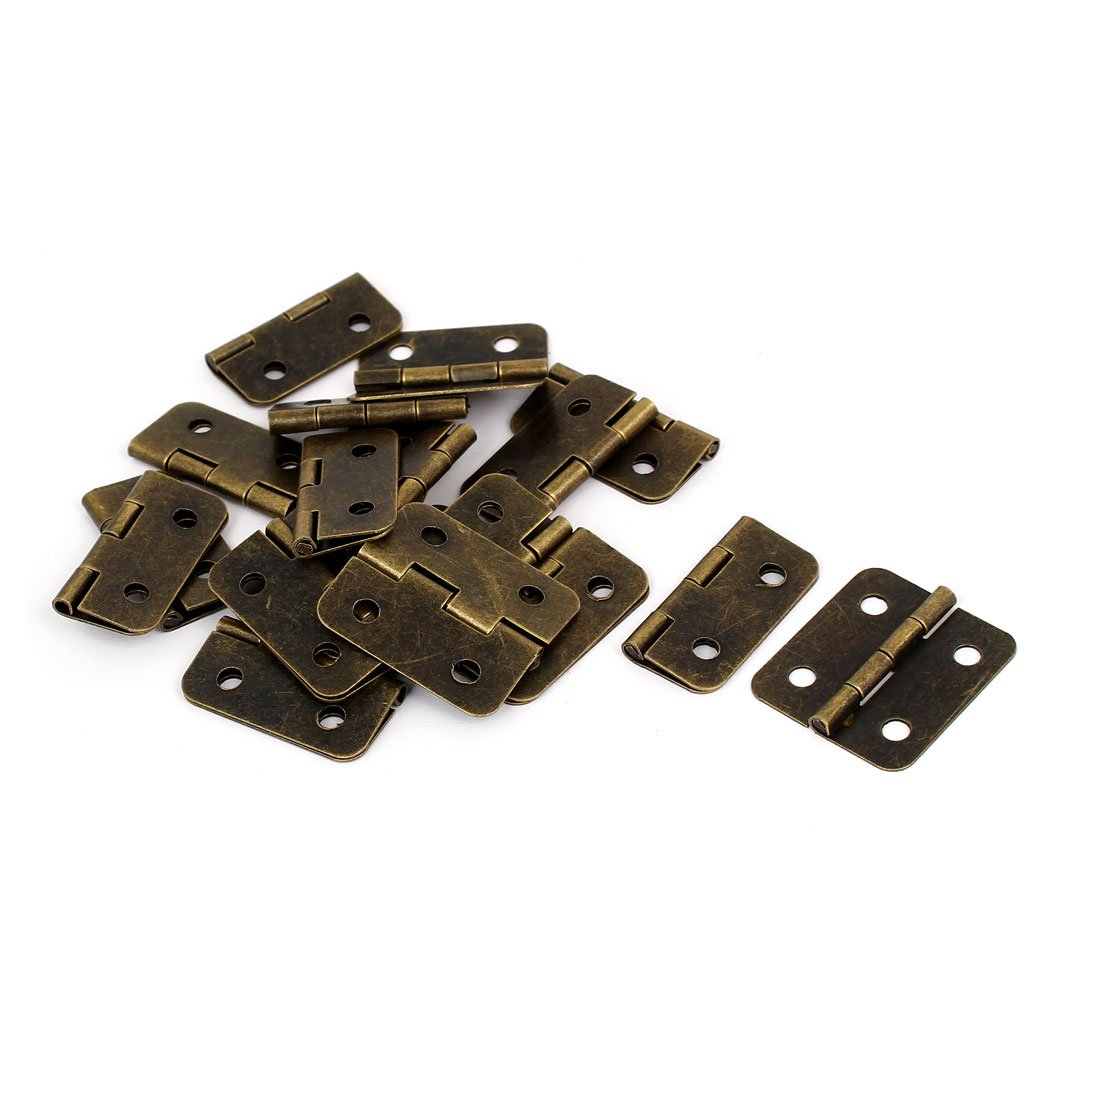 uxcell Box Toolbox Drawer 1.2 Inch Length Metal Foldable Butt Hinges Bronze Tone 20PCS by uxcell